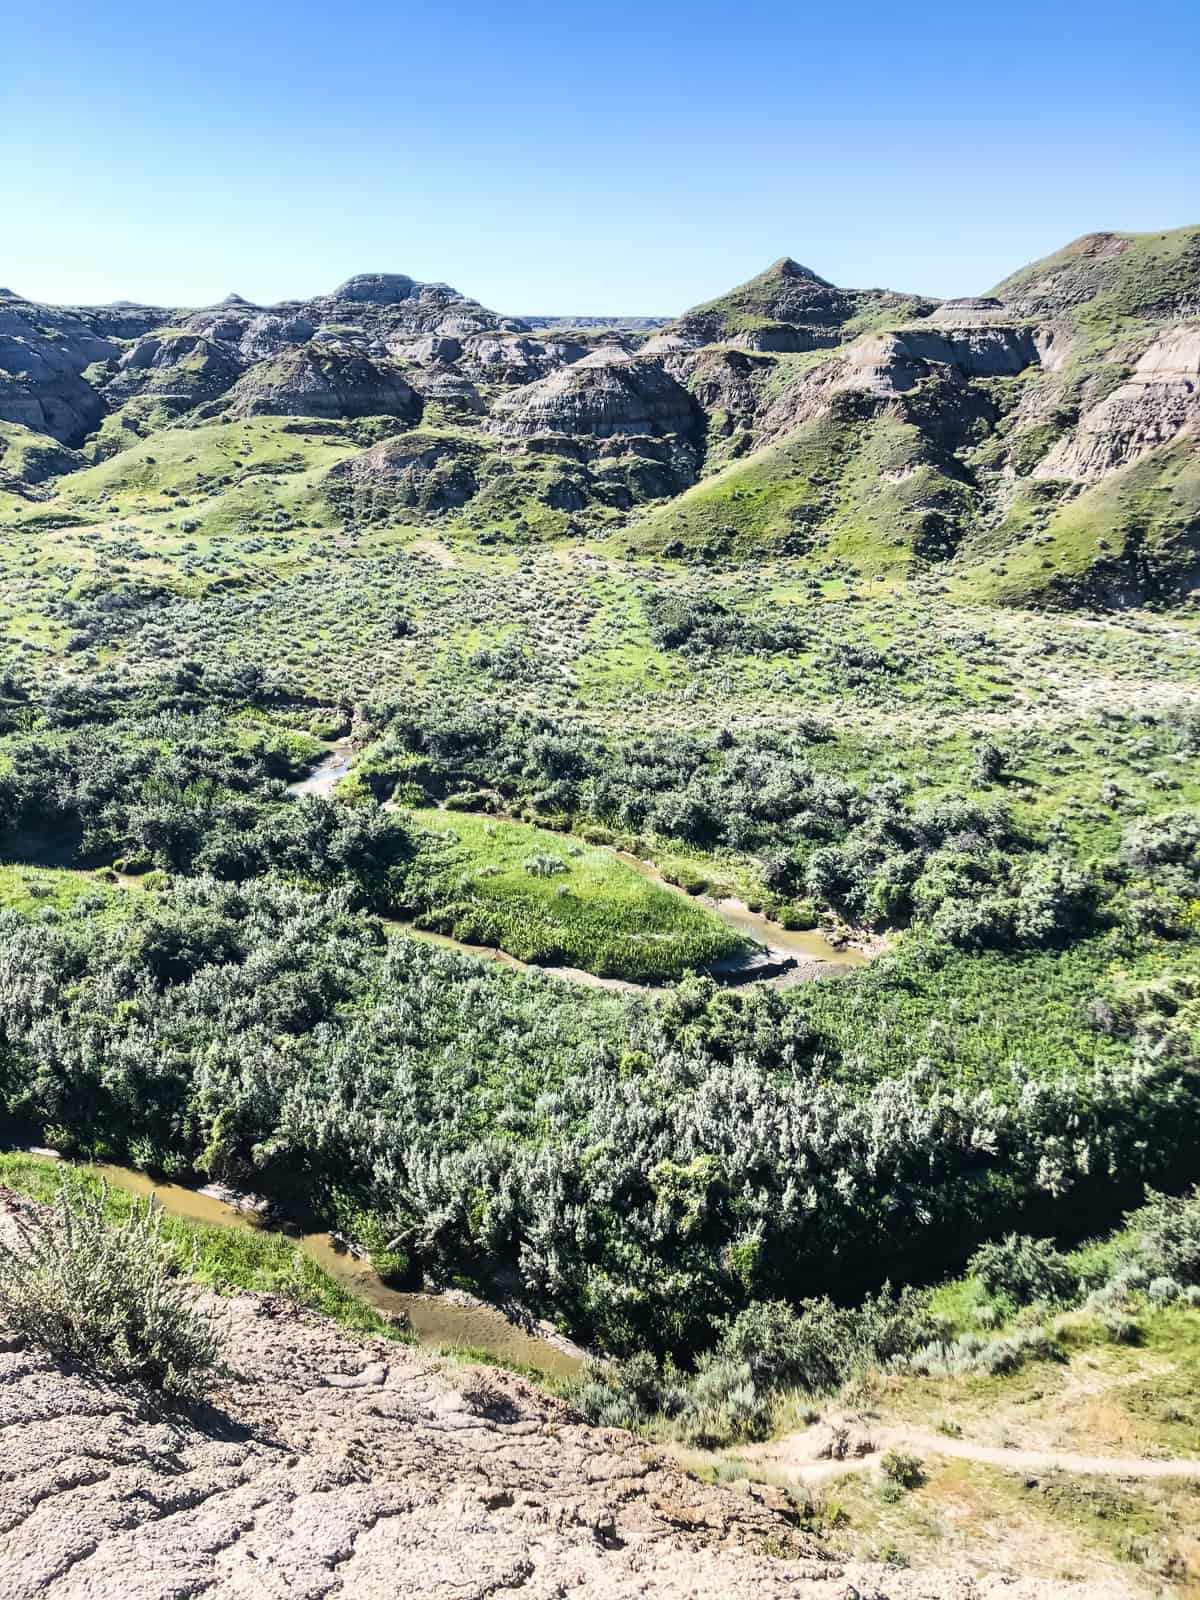 A view of lush green river valley among hoodoos